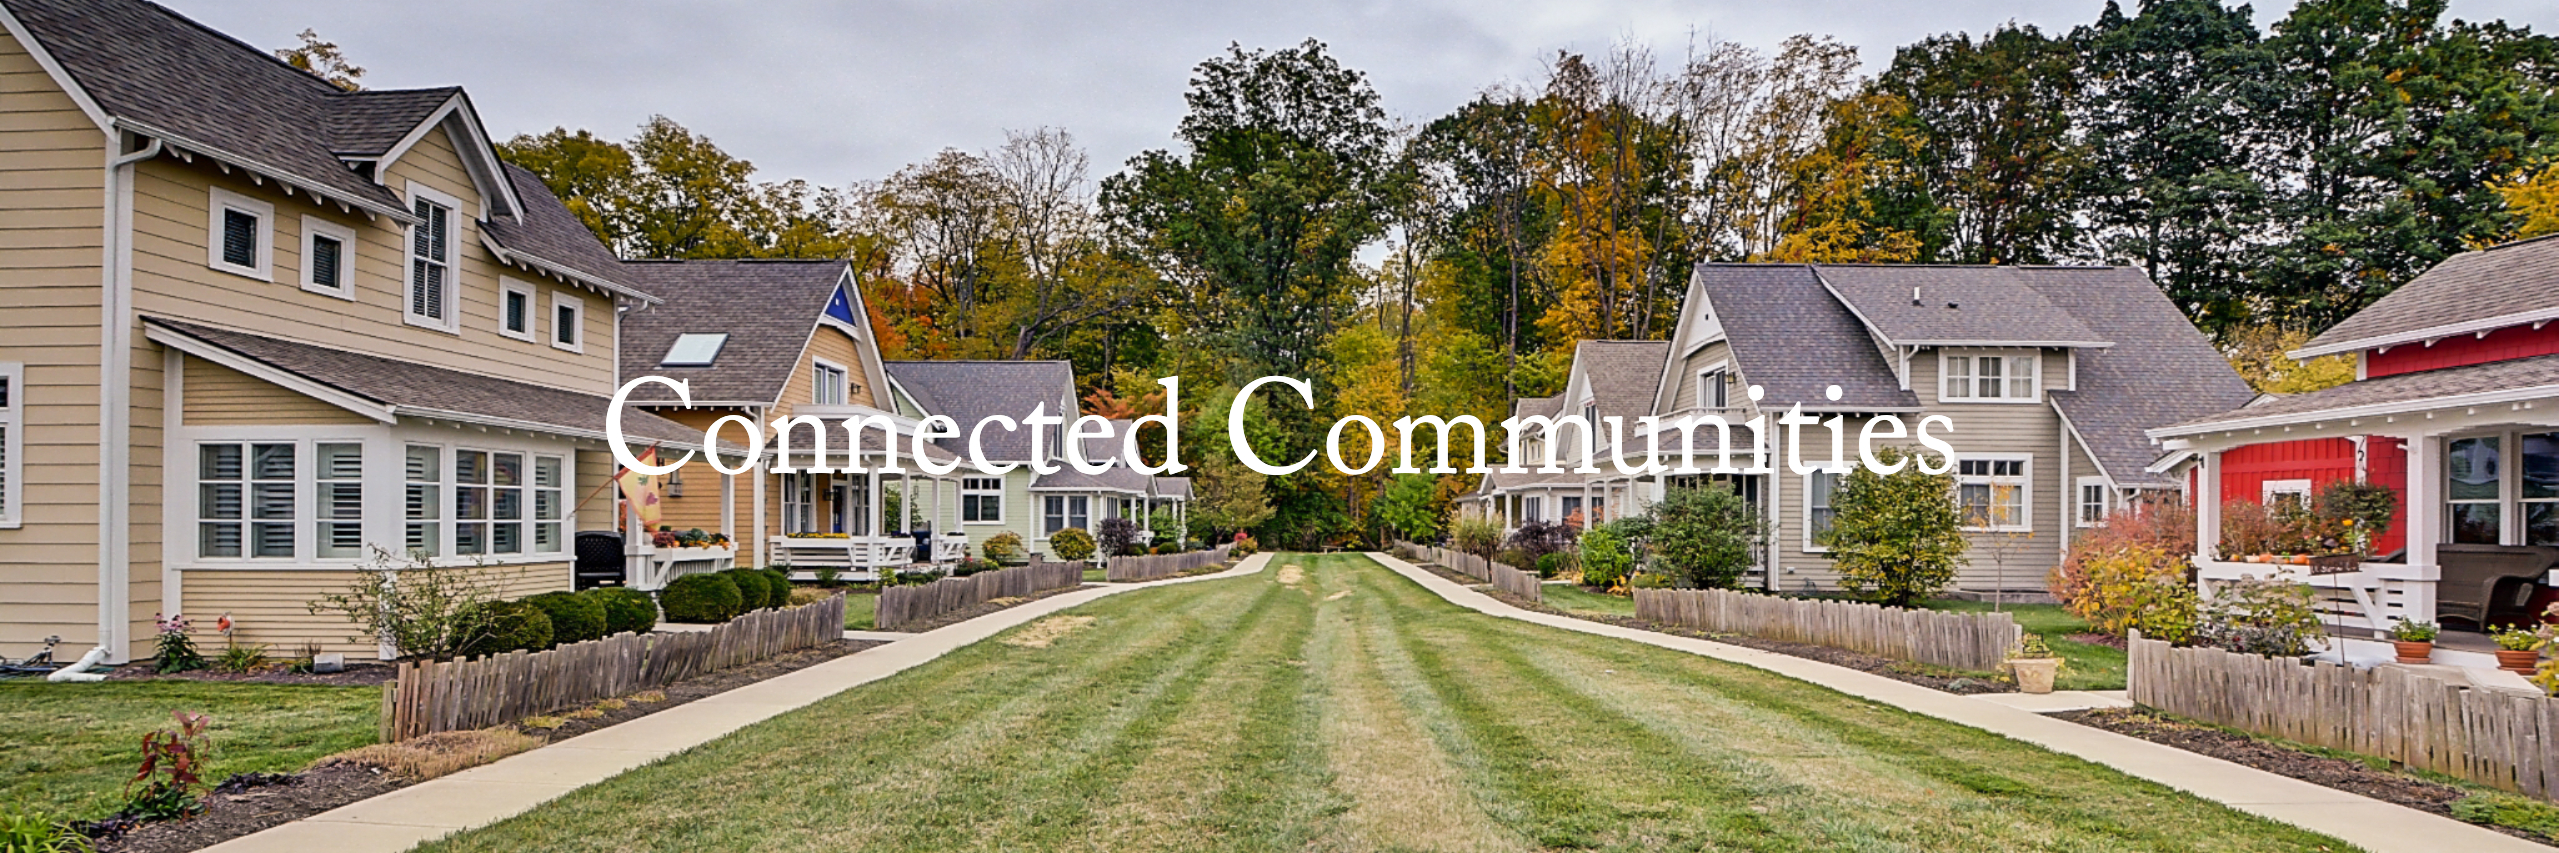 Land Development & Building New Construction Cottage Communities